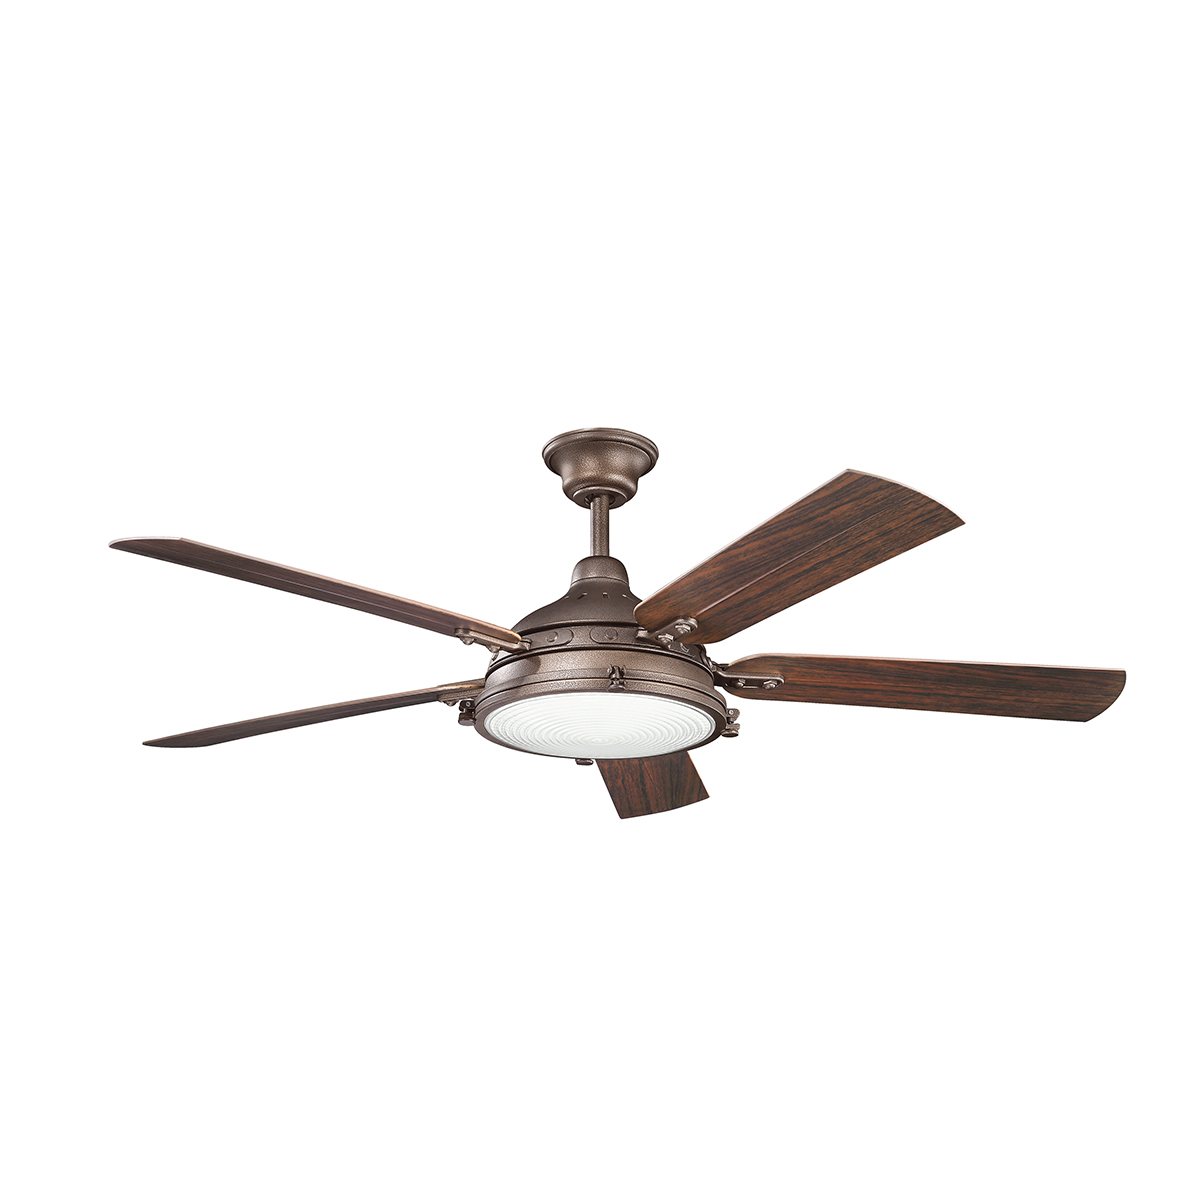 Hatteras bay large outdoor ceiling fan with light by kichler